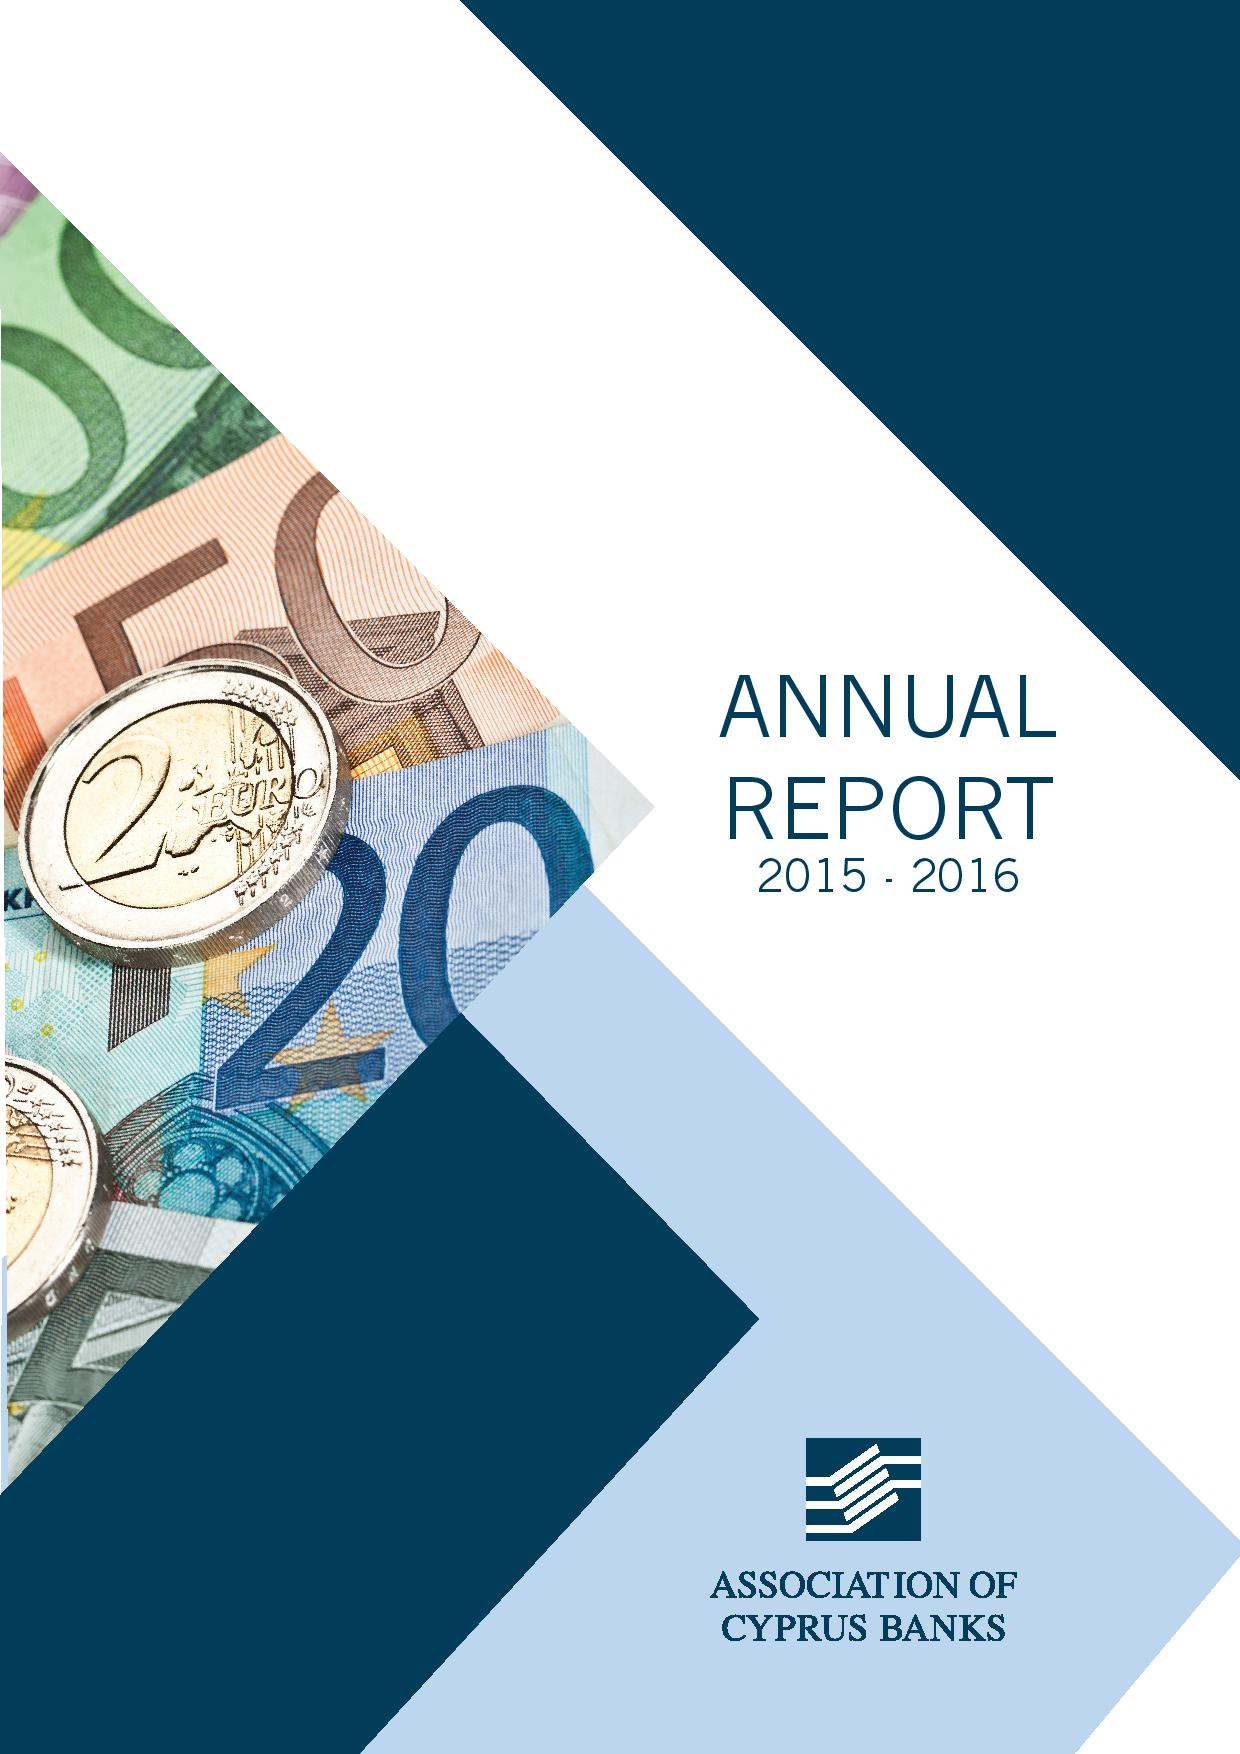 Association of Cyprus Banks: Annual Report